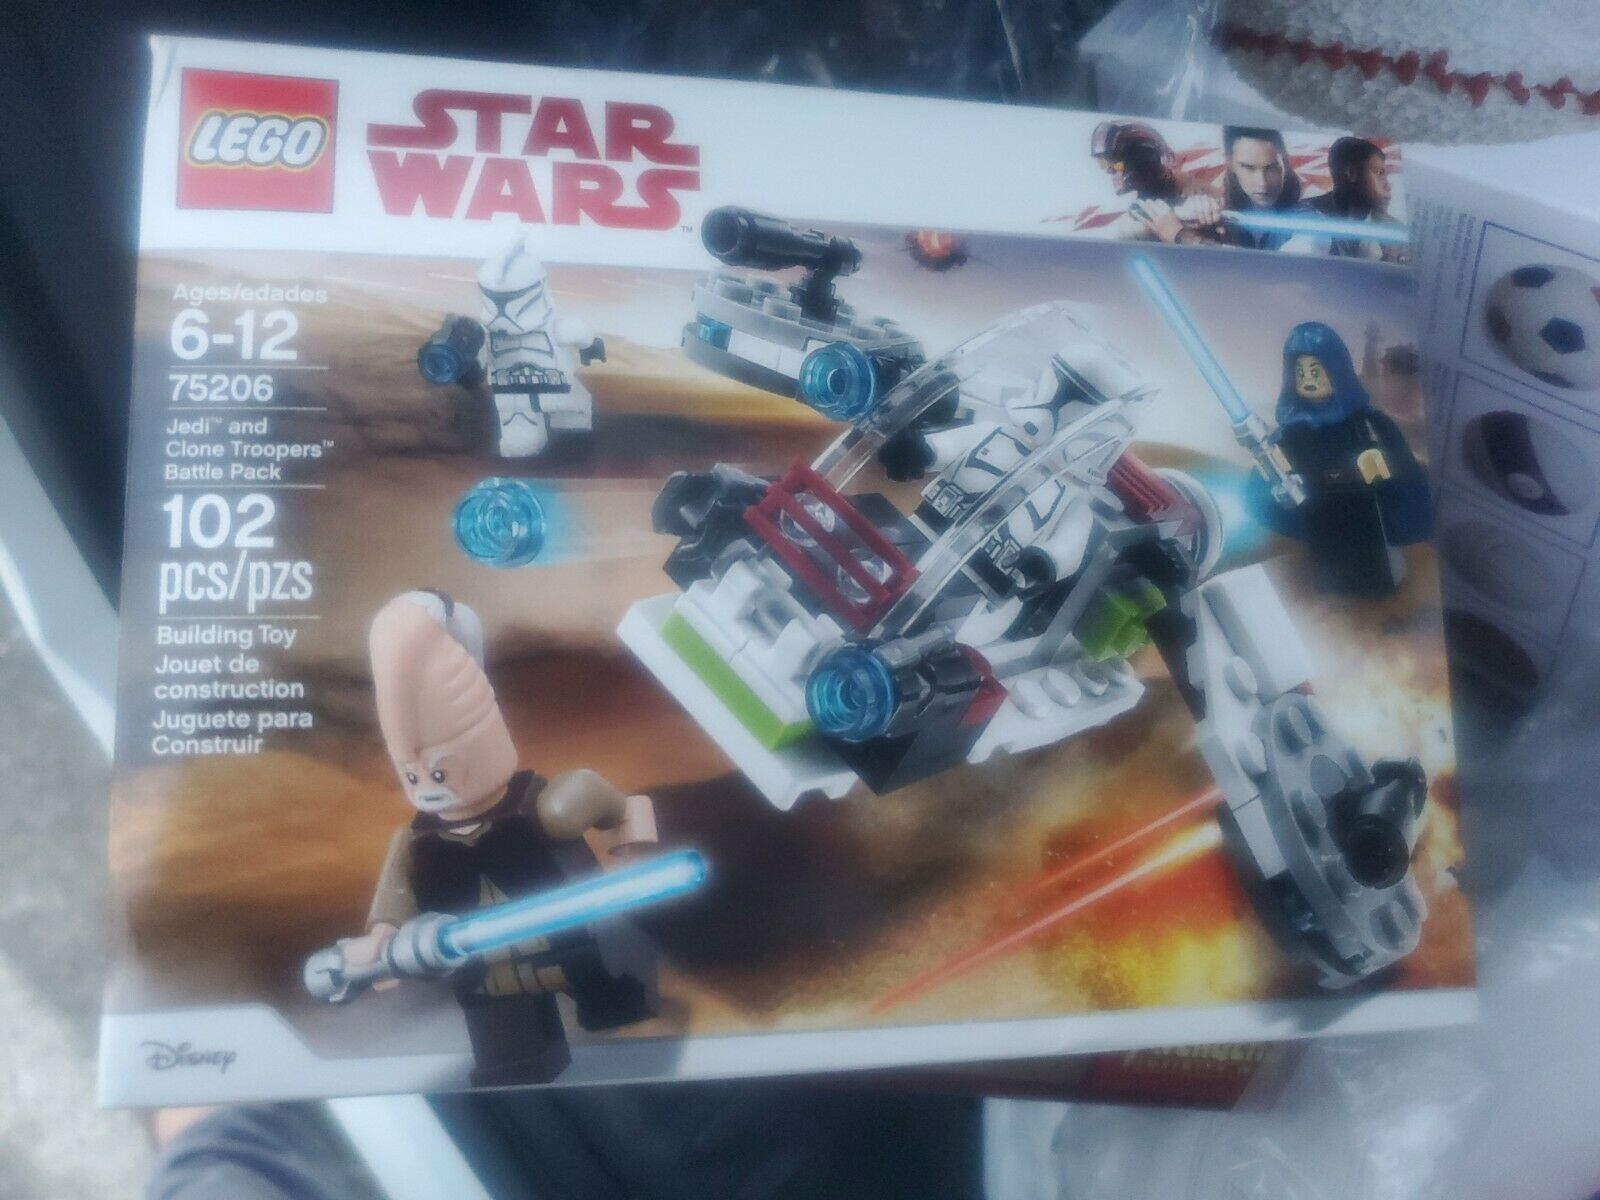 Lego Star Wars 75206 Jedi /& Clone Troopers Battle Pack Barriss Offee Minifigure